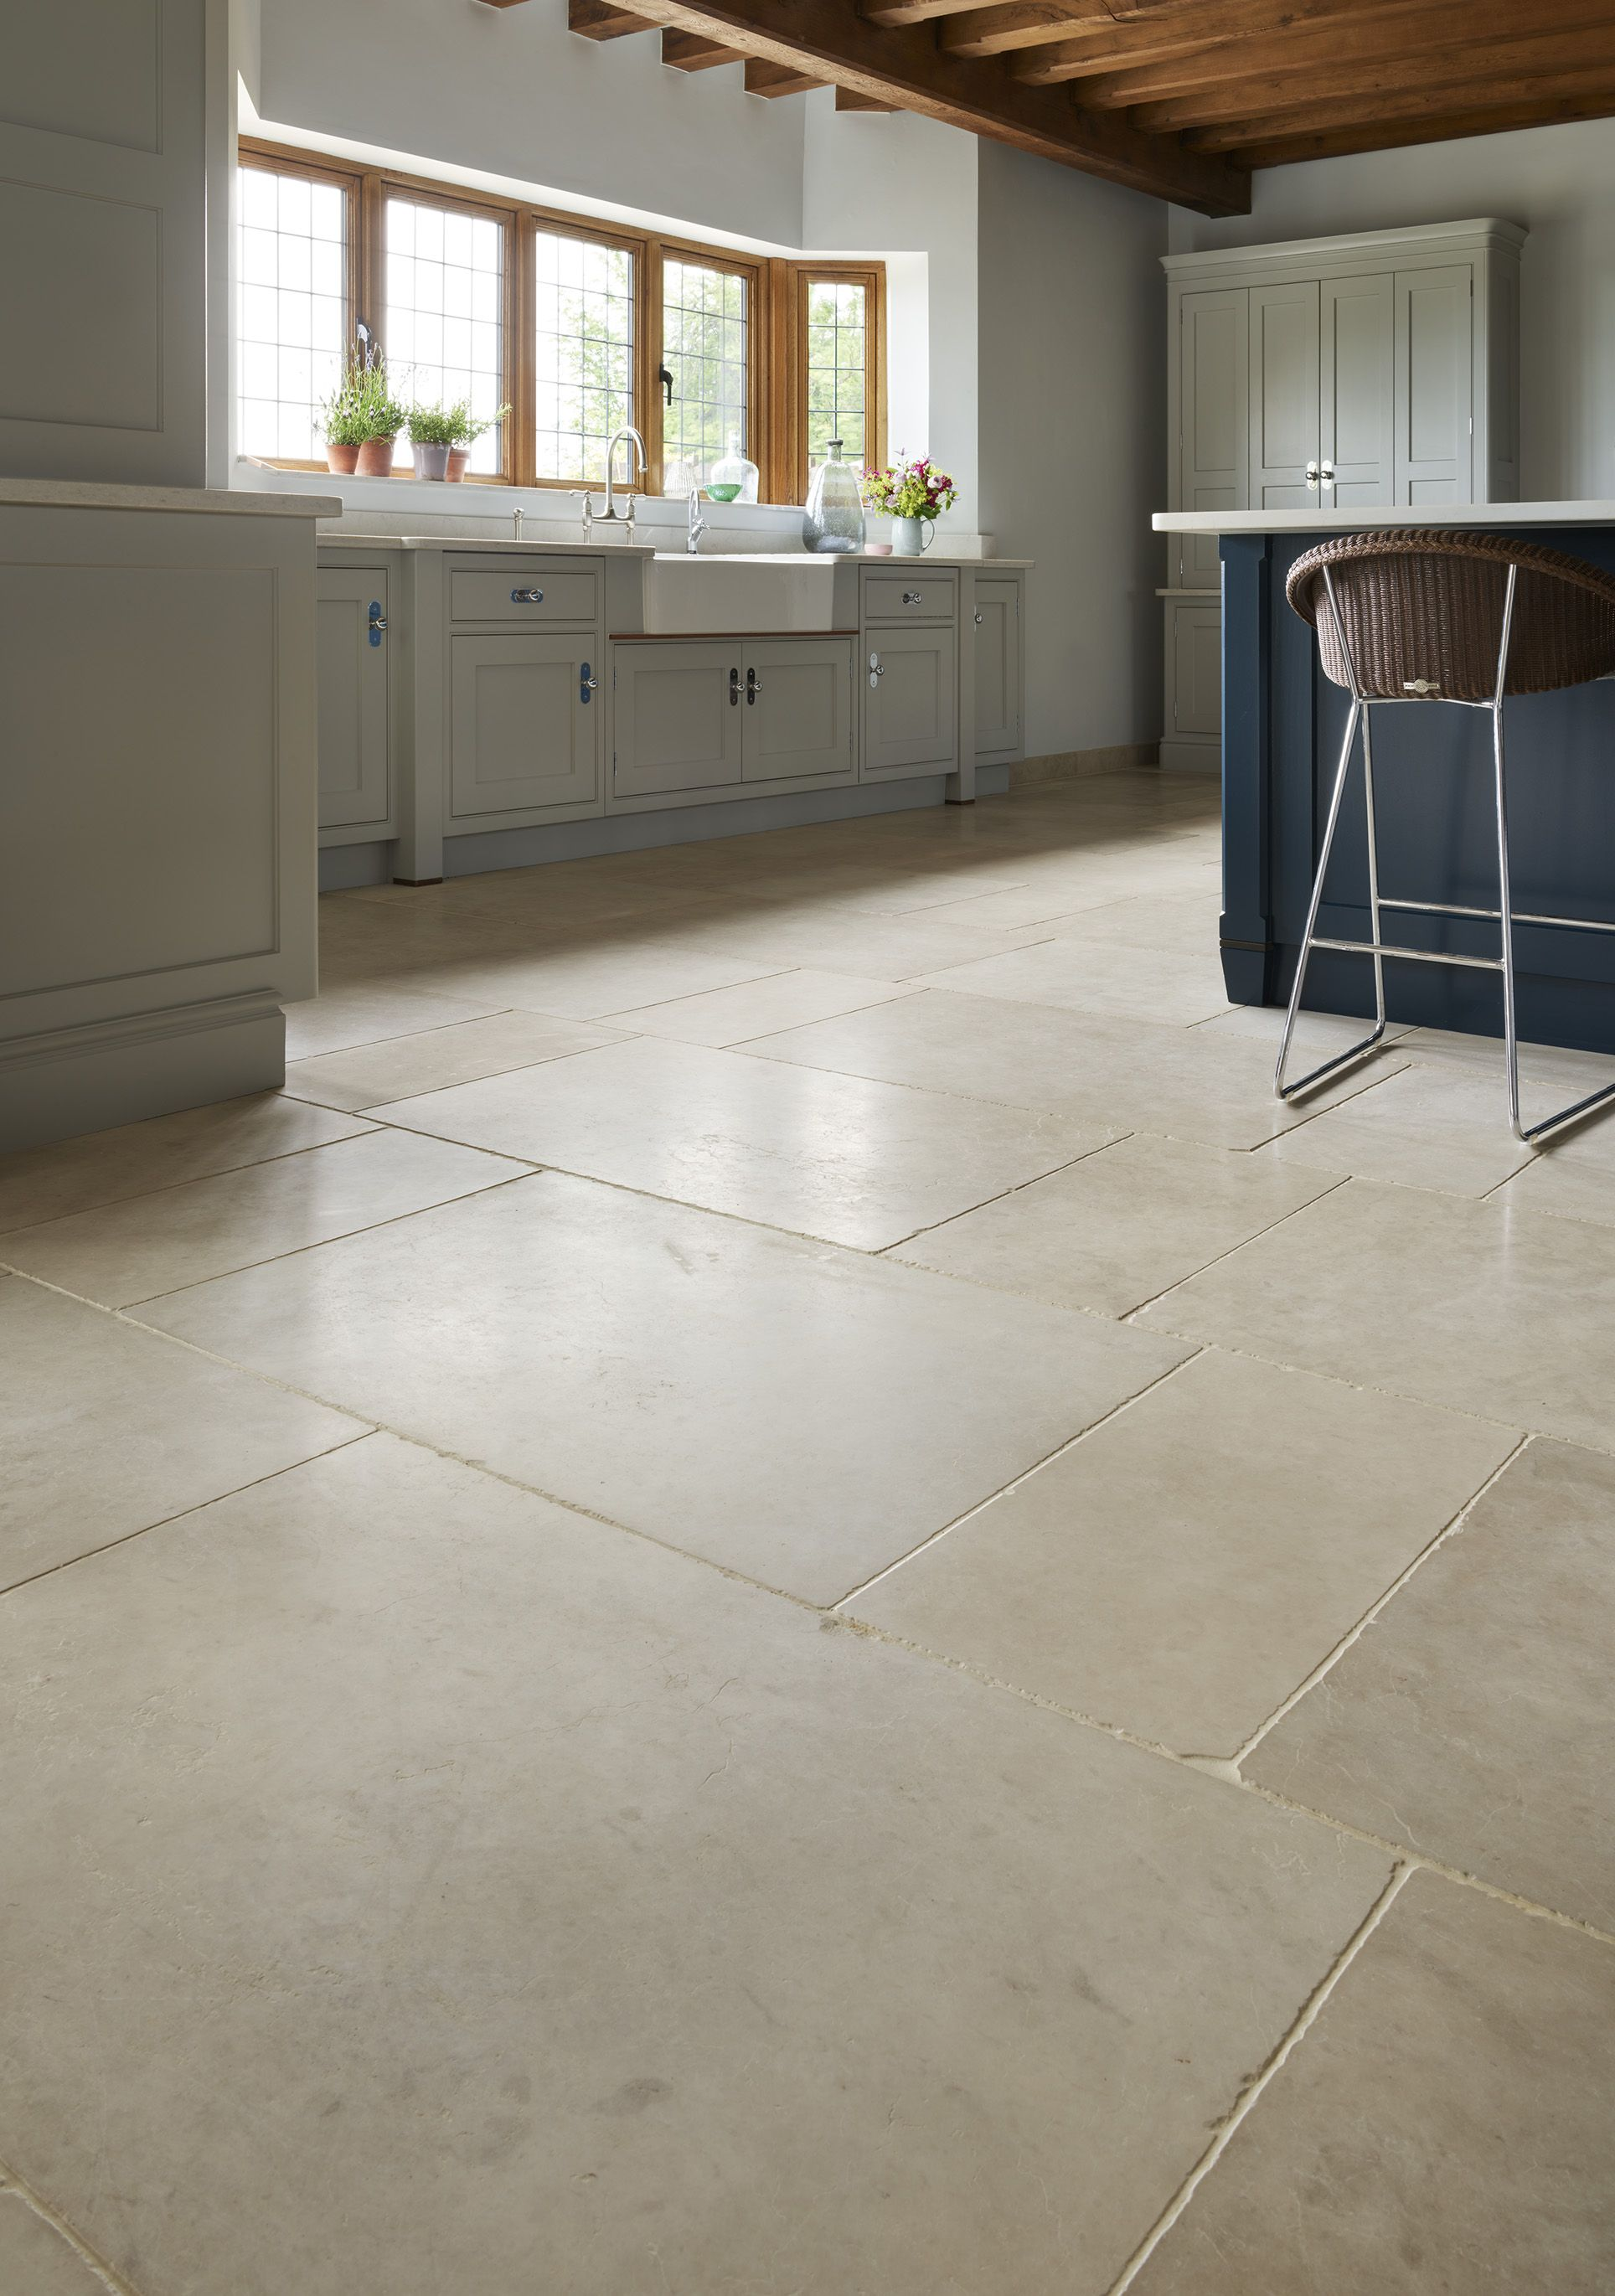 Aged Bourne A Cool Chic Traditional Flagstone Kitchen Floor